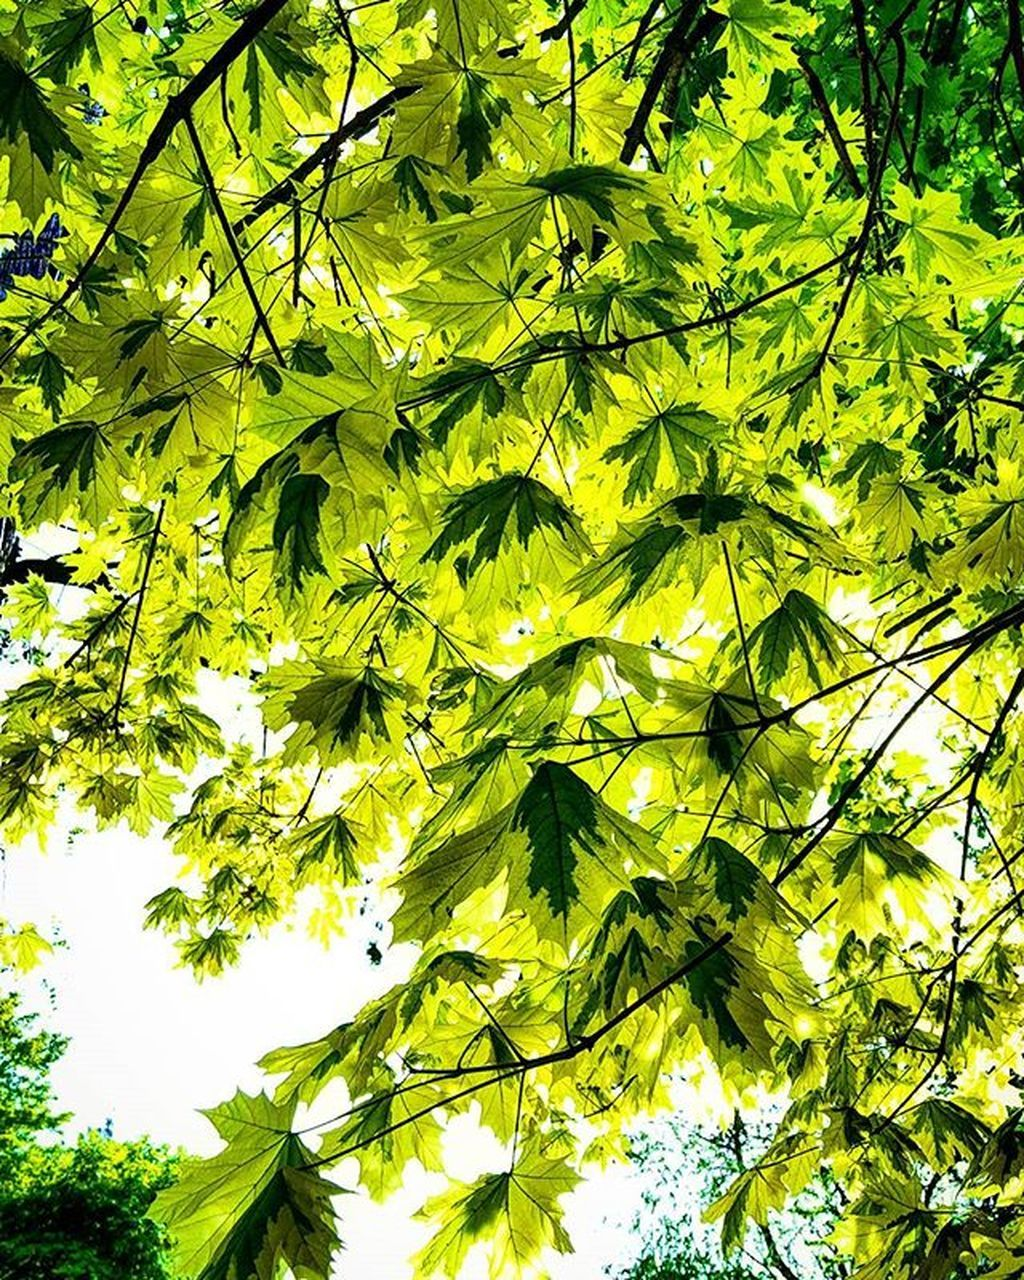 leaves, green, nature, growth, leaf, foliage, green color, tree, day, beauty in nature, outdoors, branch, no people